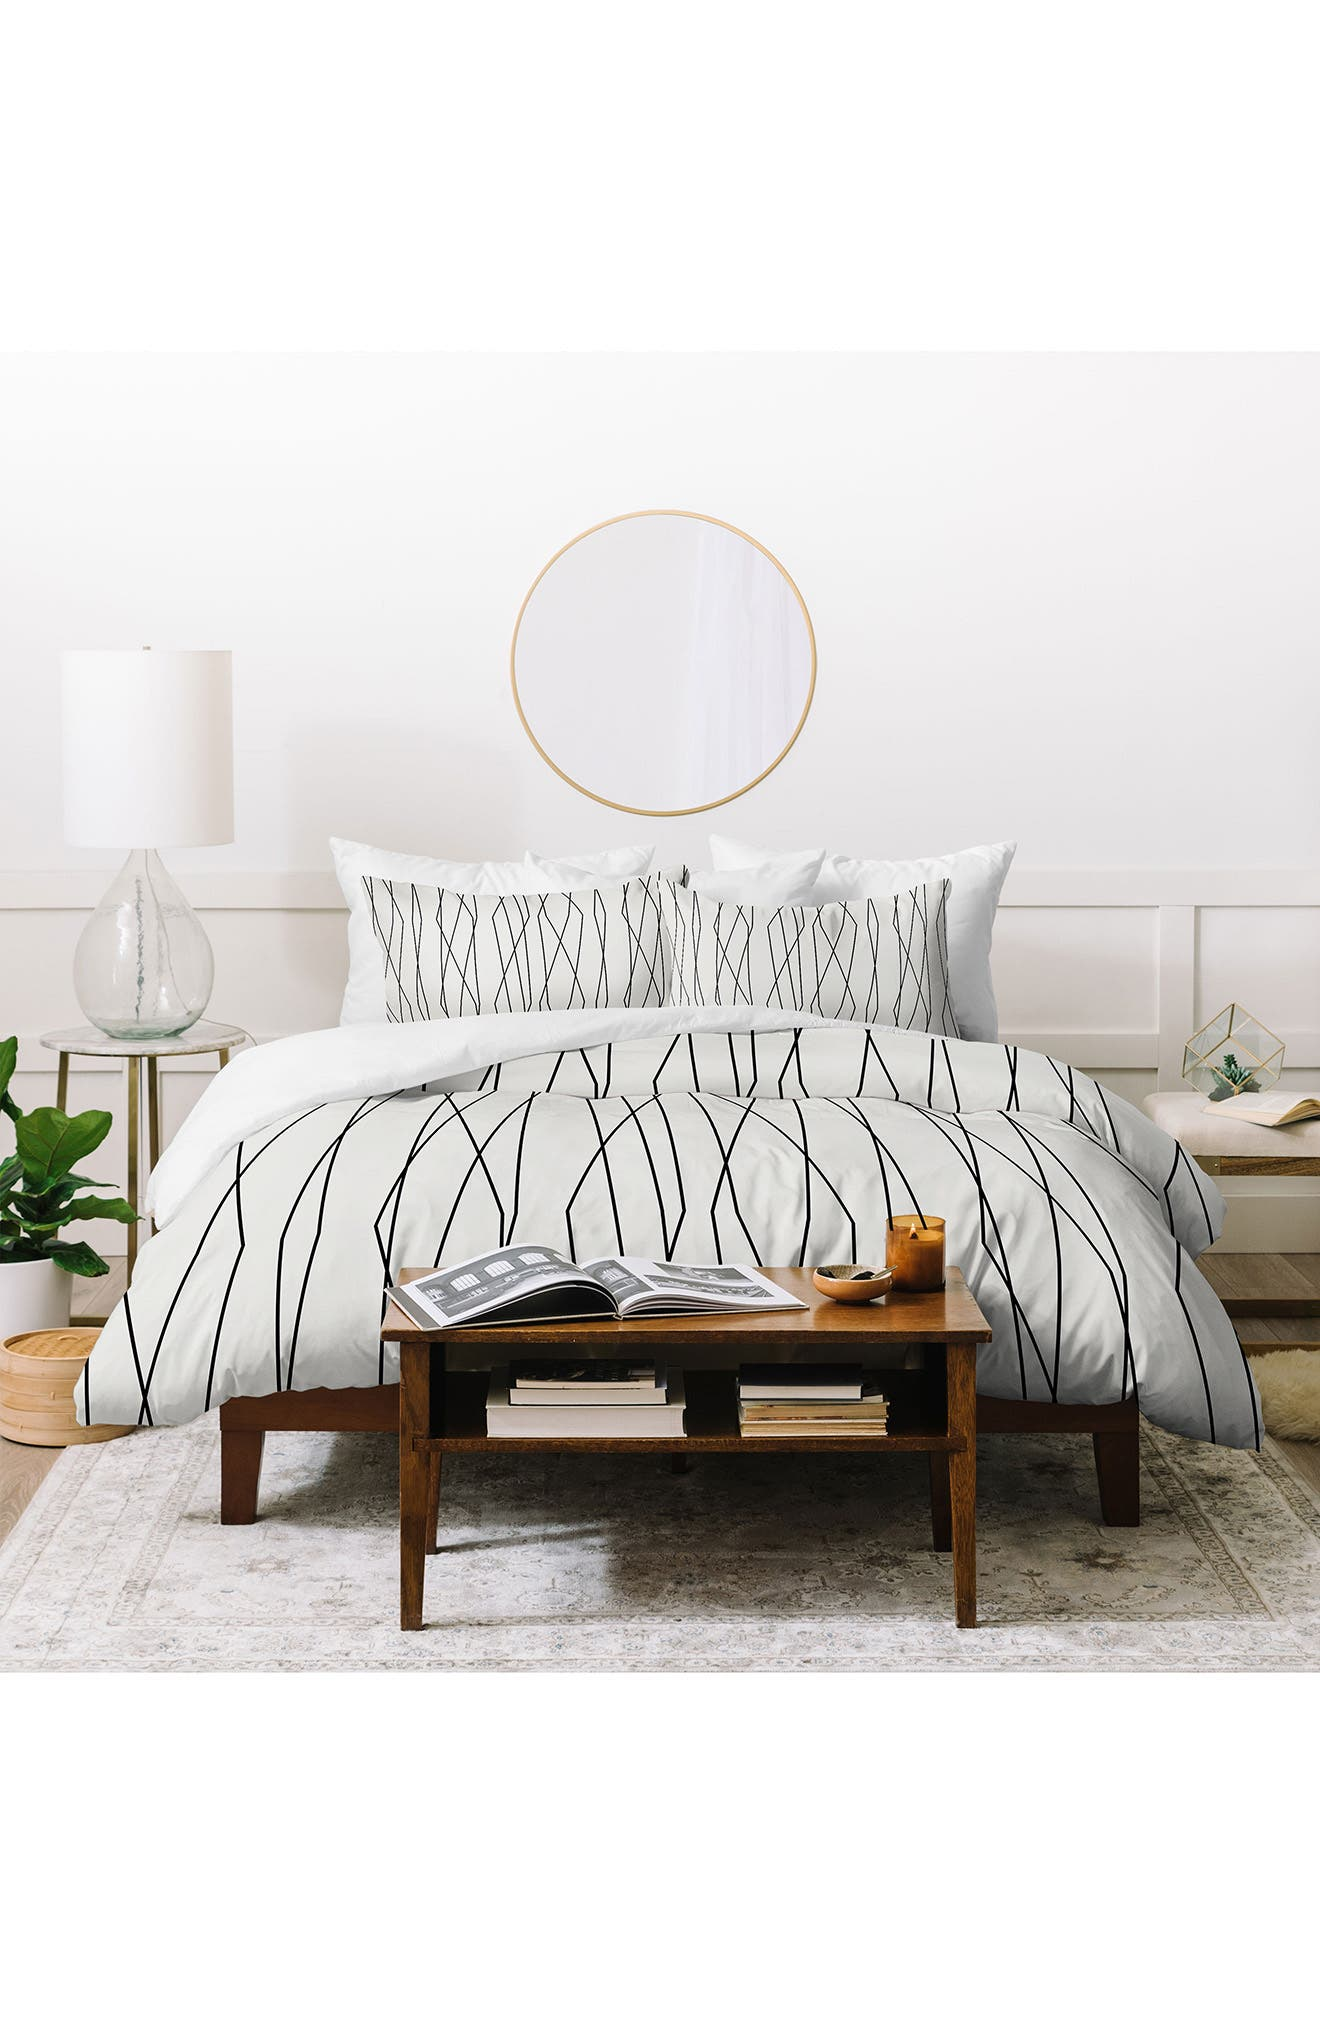 An eye-catching geometric design brings statement-making style to a versatile duvet cover and coordinating shams. Style Name: Deny Designs Heather Dutton Linear Cross Duvet Cover & Sham Set. Style Number: 6083328. Available in stores.